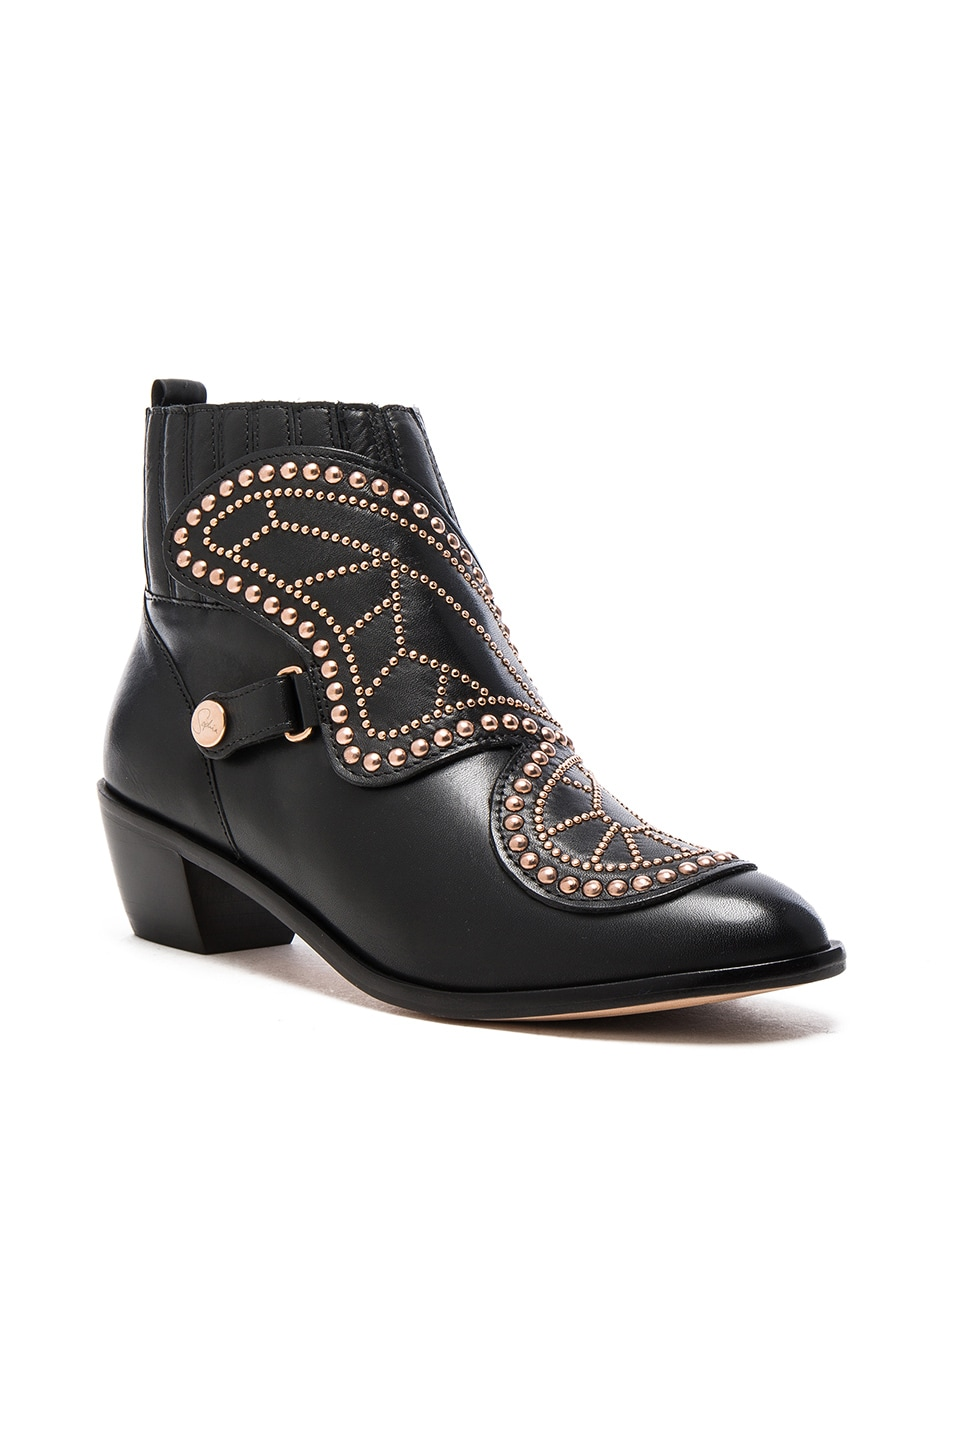 Image 3 of Sophia Webster Karina Butterfly Boots in Black